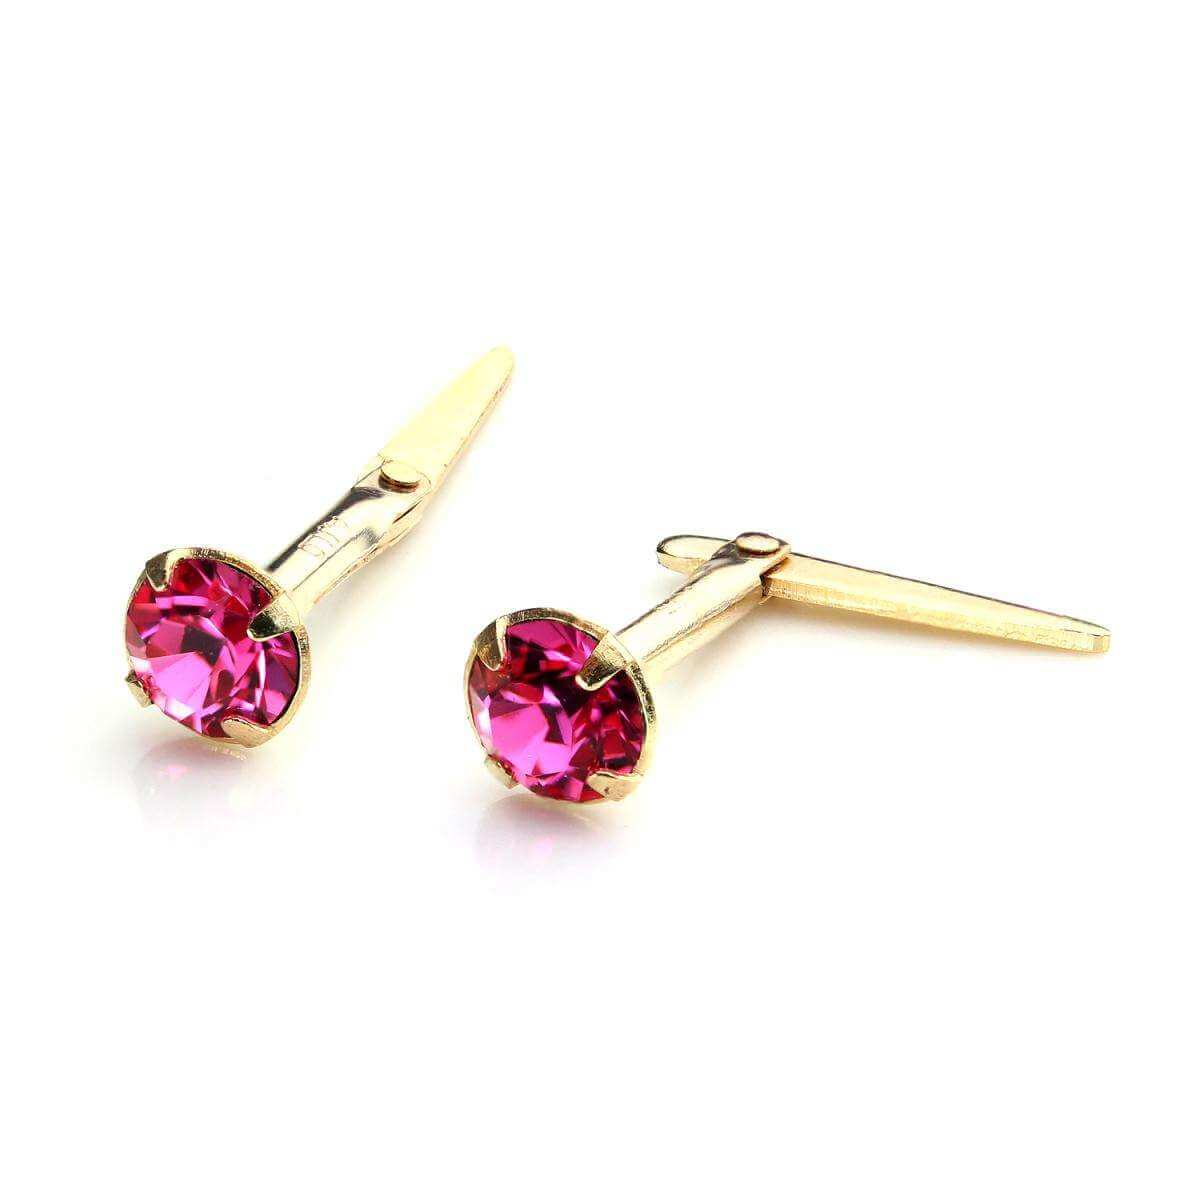 9ct Gold Andralok Stud Earrings with 3mm Rose Crystal